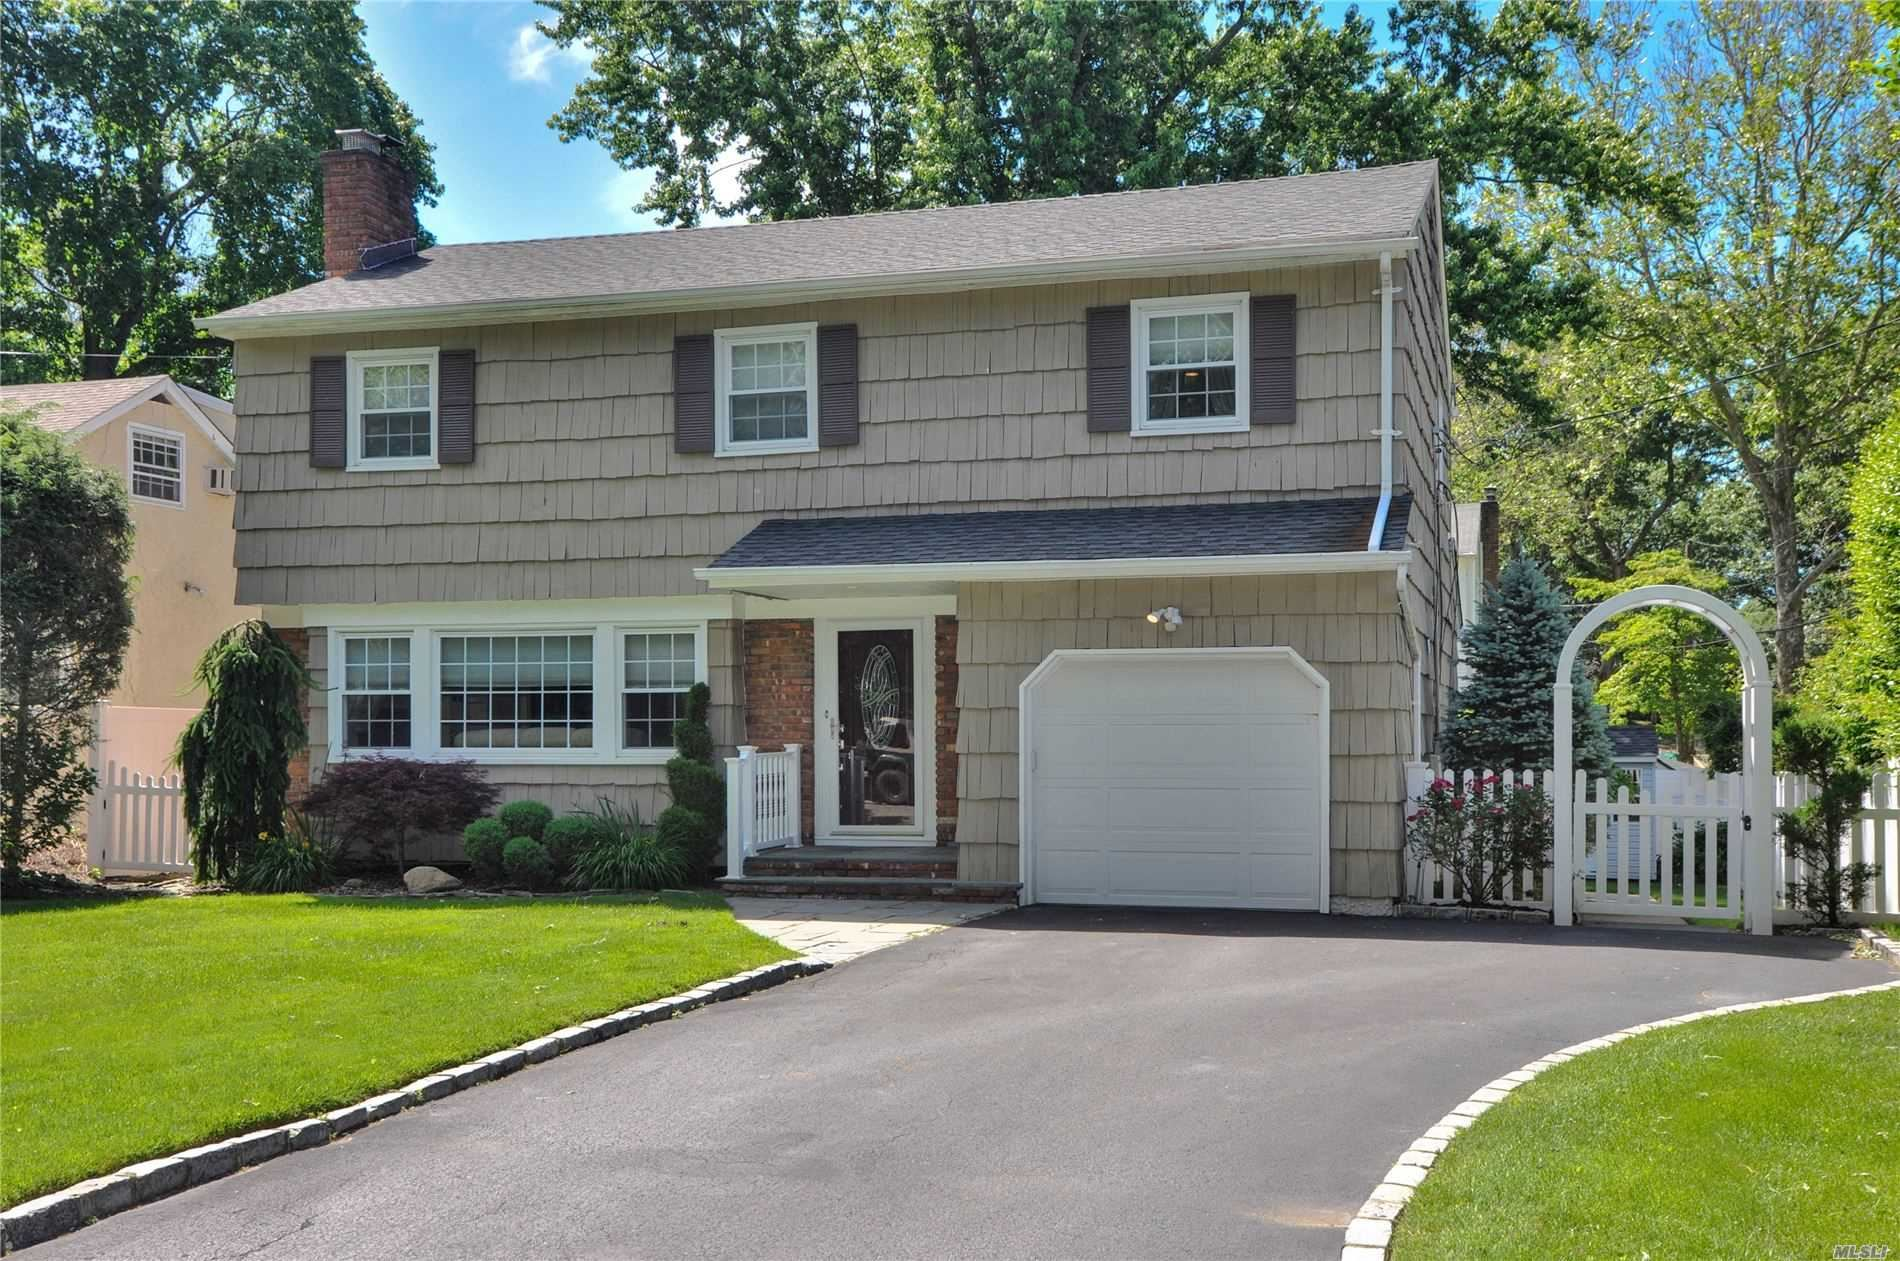 1 Brush Pl, Huntington, NY 11743 - MLS#: 3234504